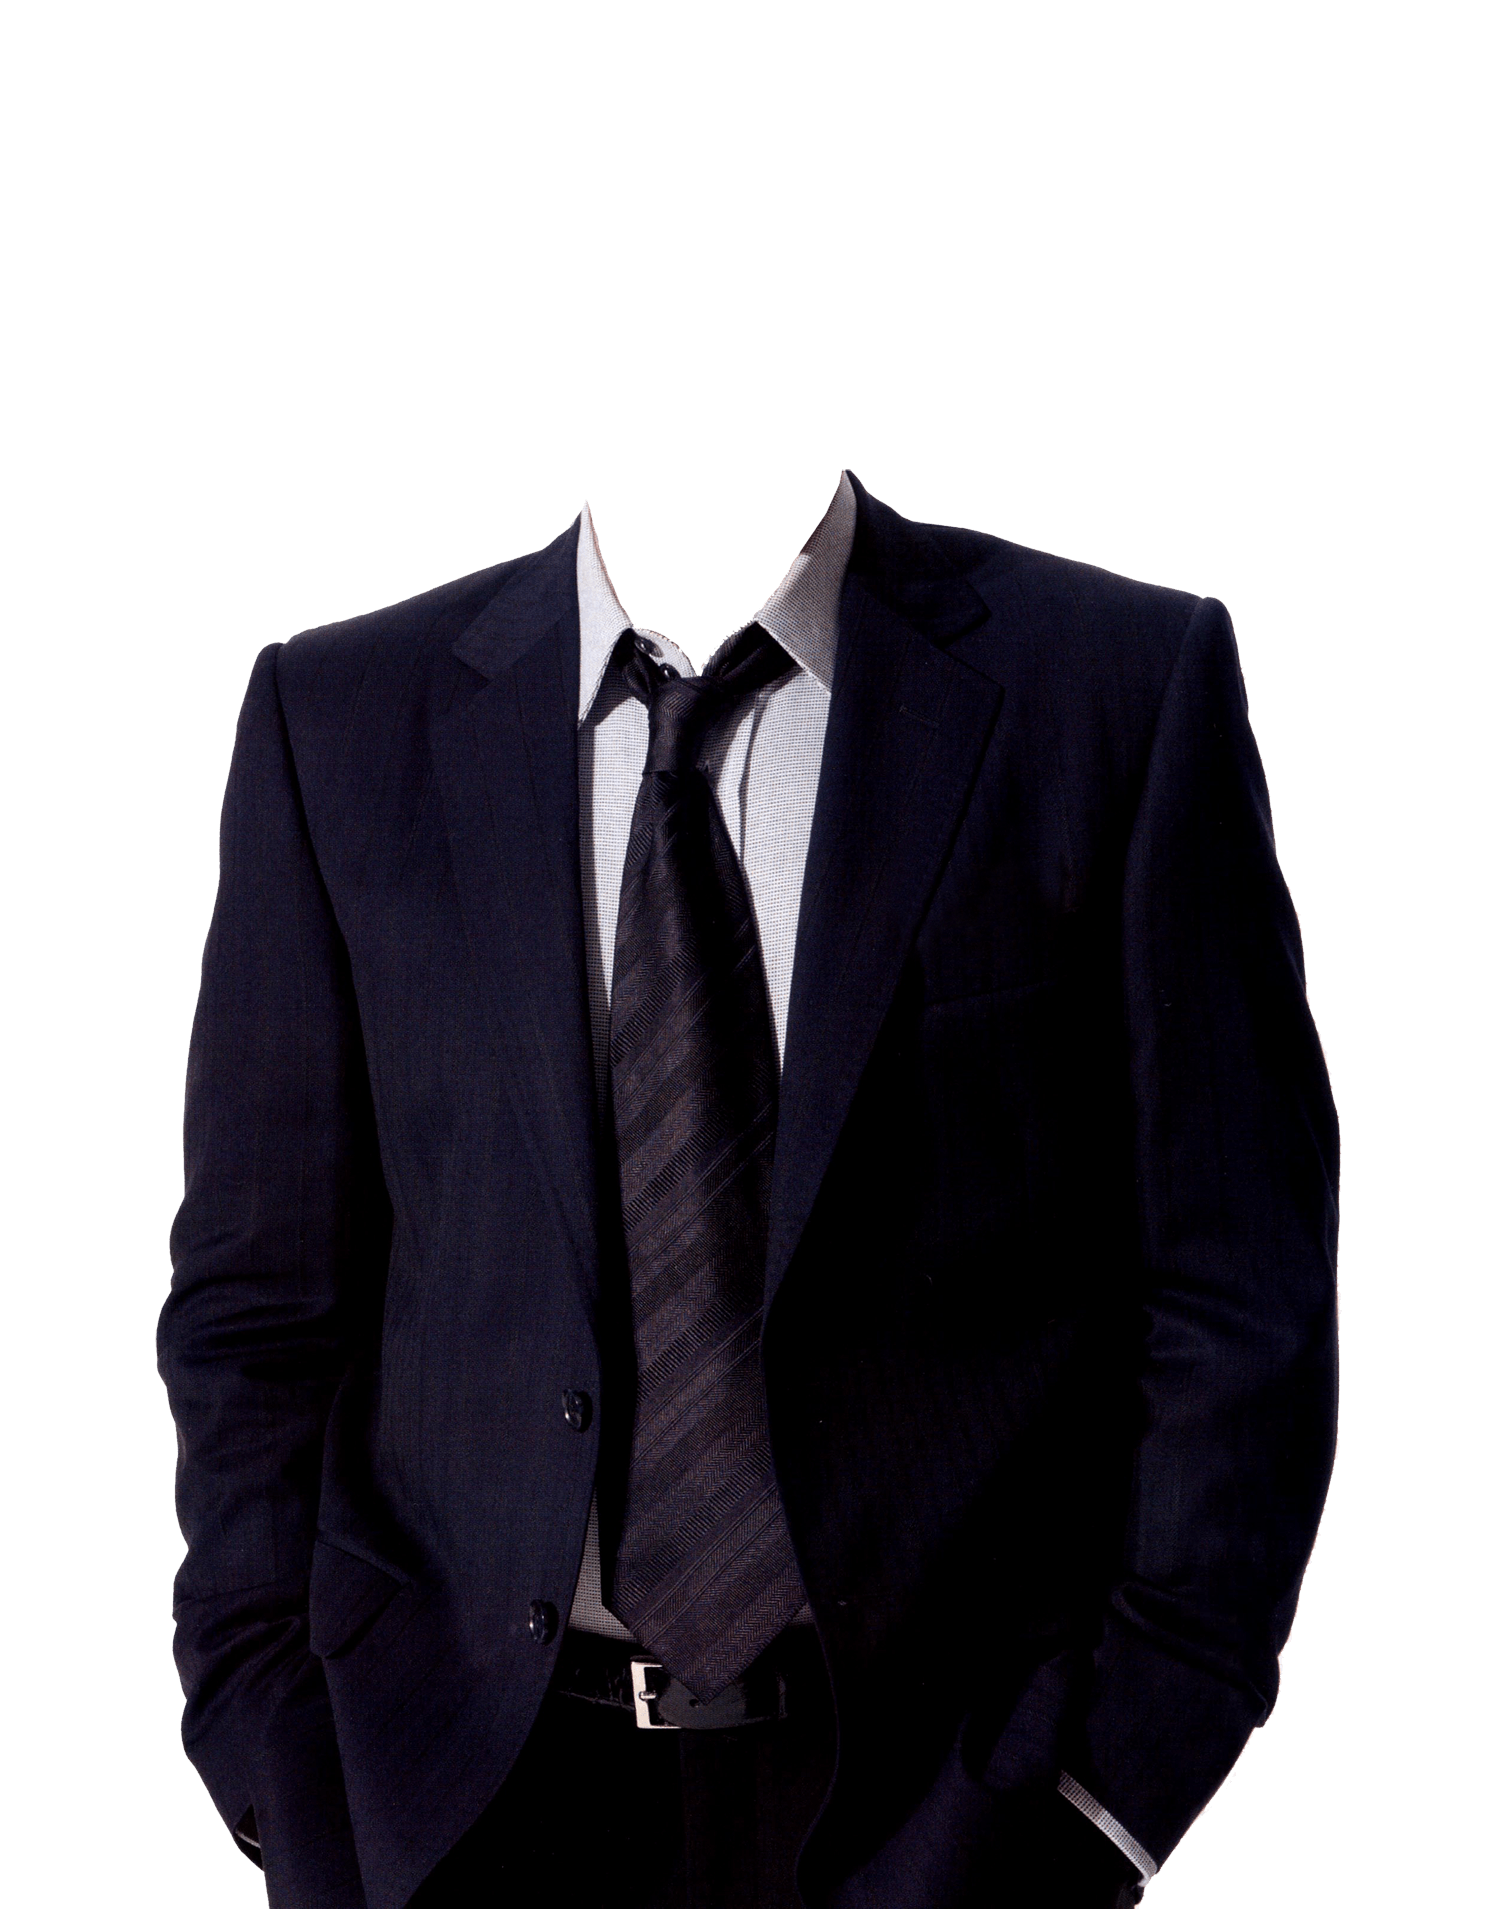 Suit transparent. And tie no head